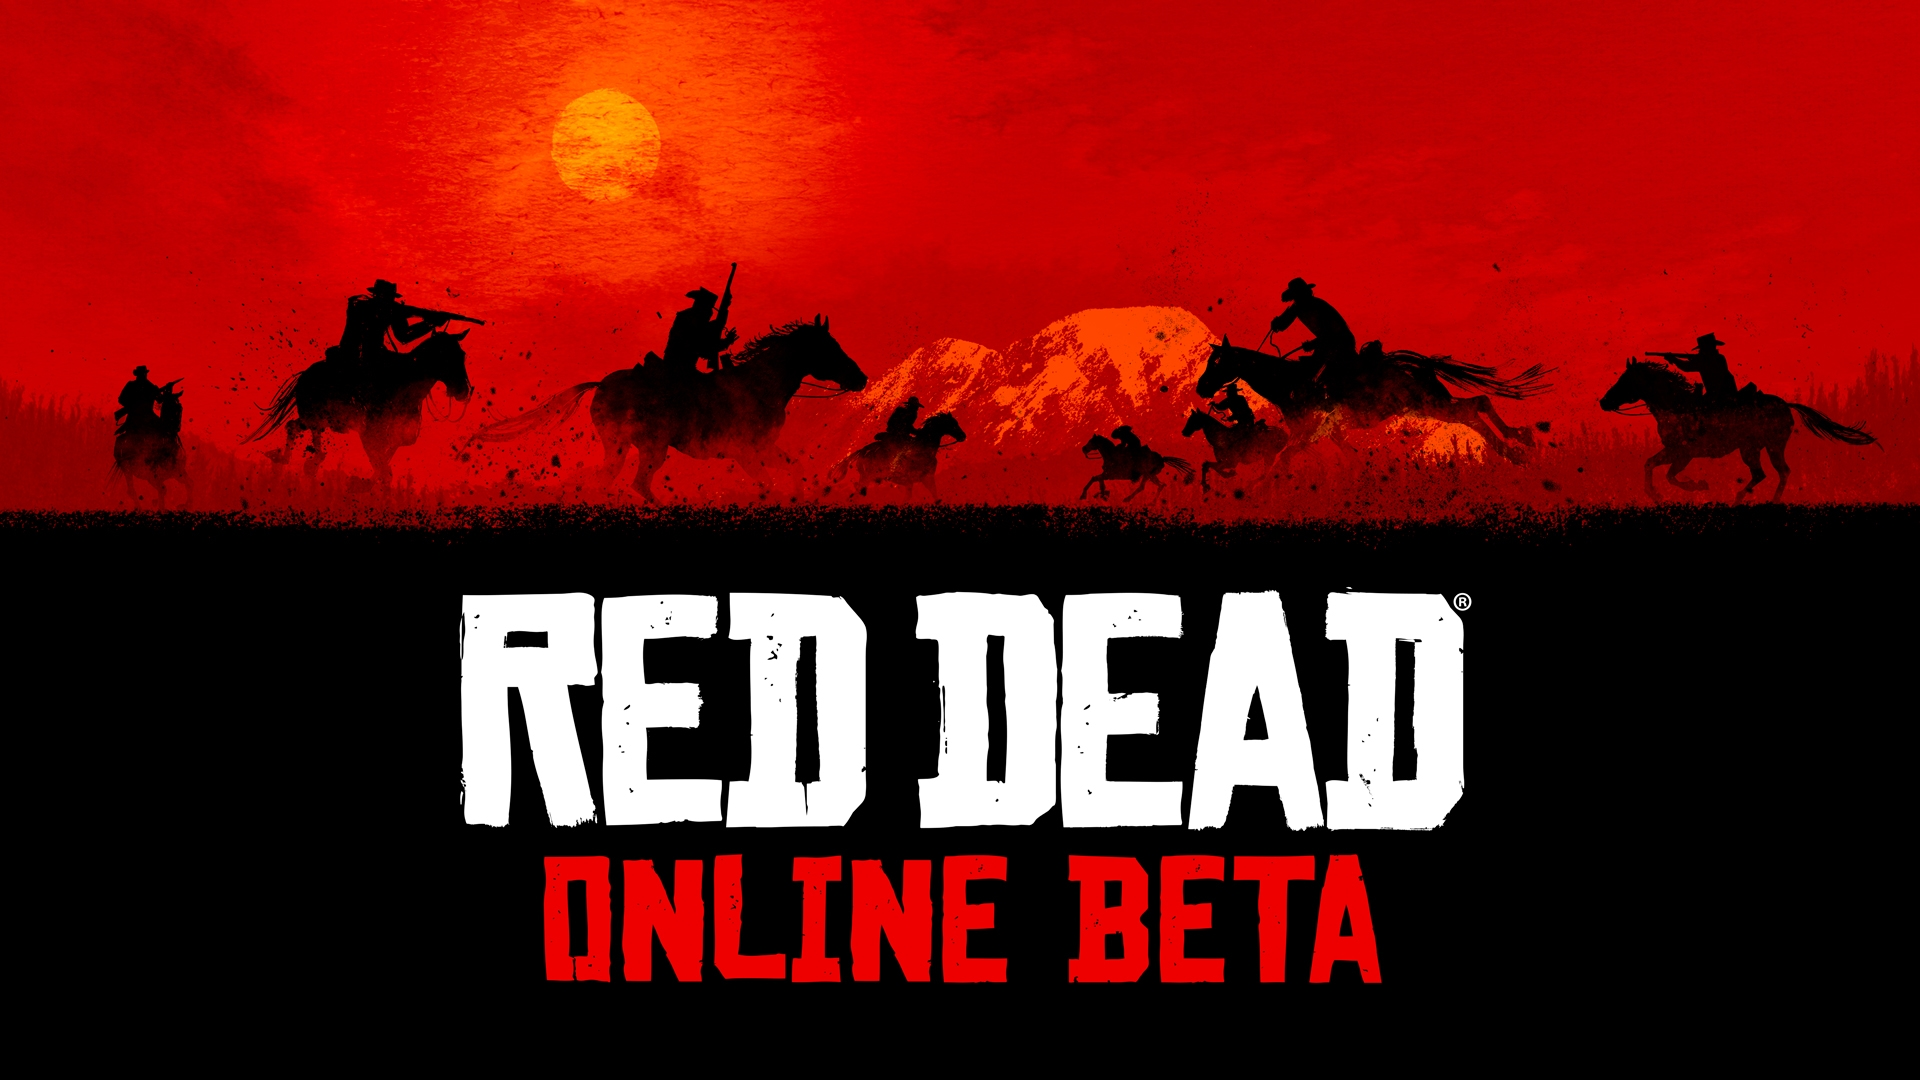 Red Dead Online Beta - Rockstar Games